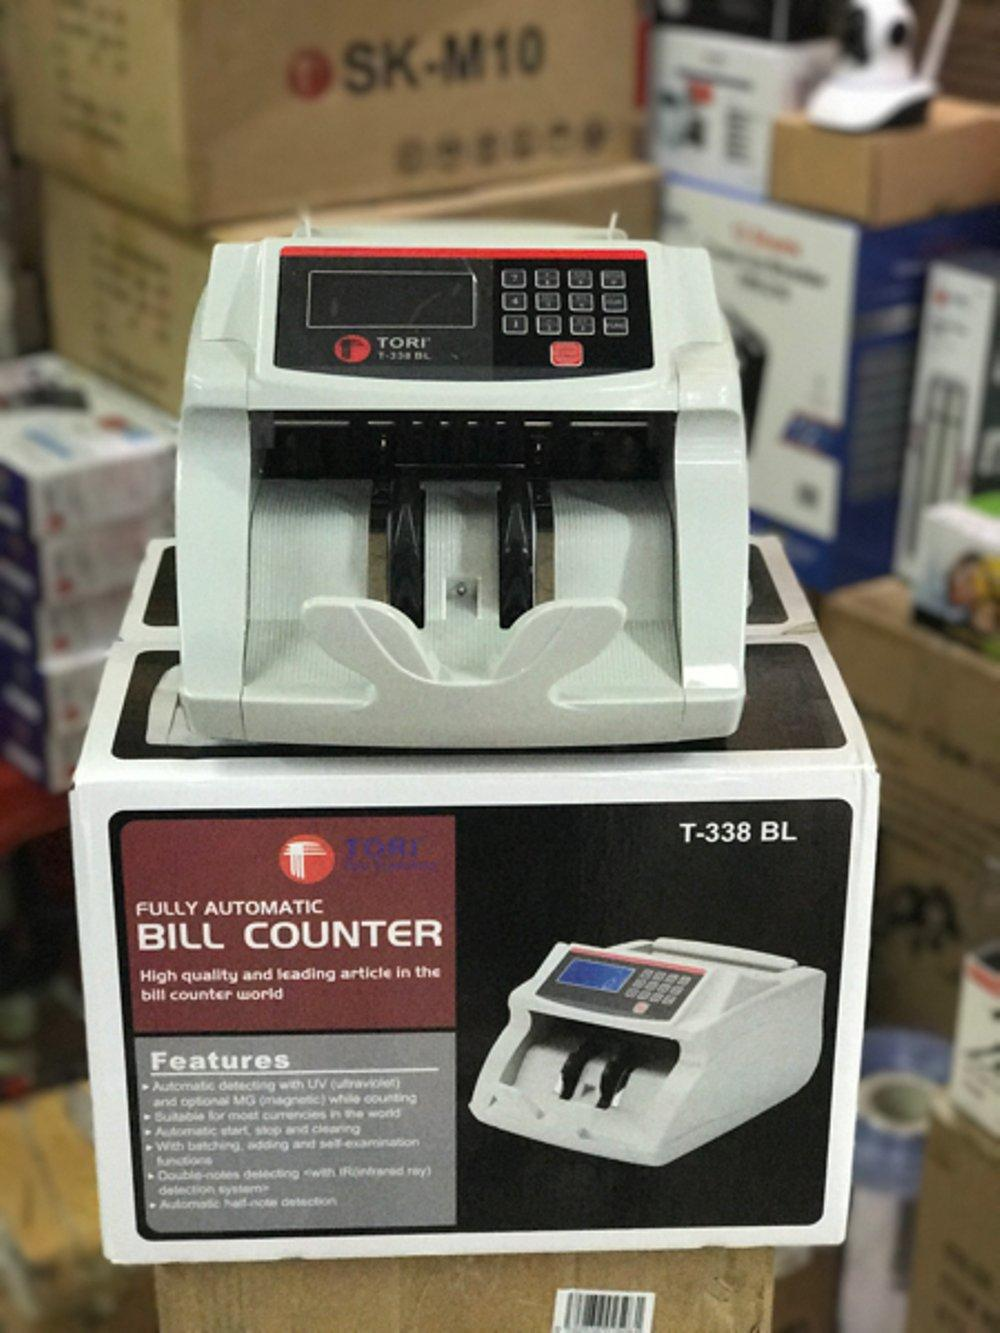 Buy Sell Cheapest Xoxogrosir Mesin Hitung Best Quality Product Uang Money Counter Secure Ld 22a Tori T 338 Bl